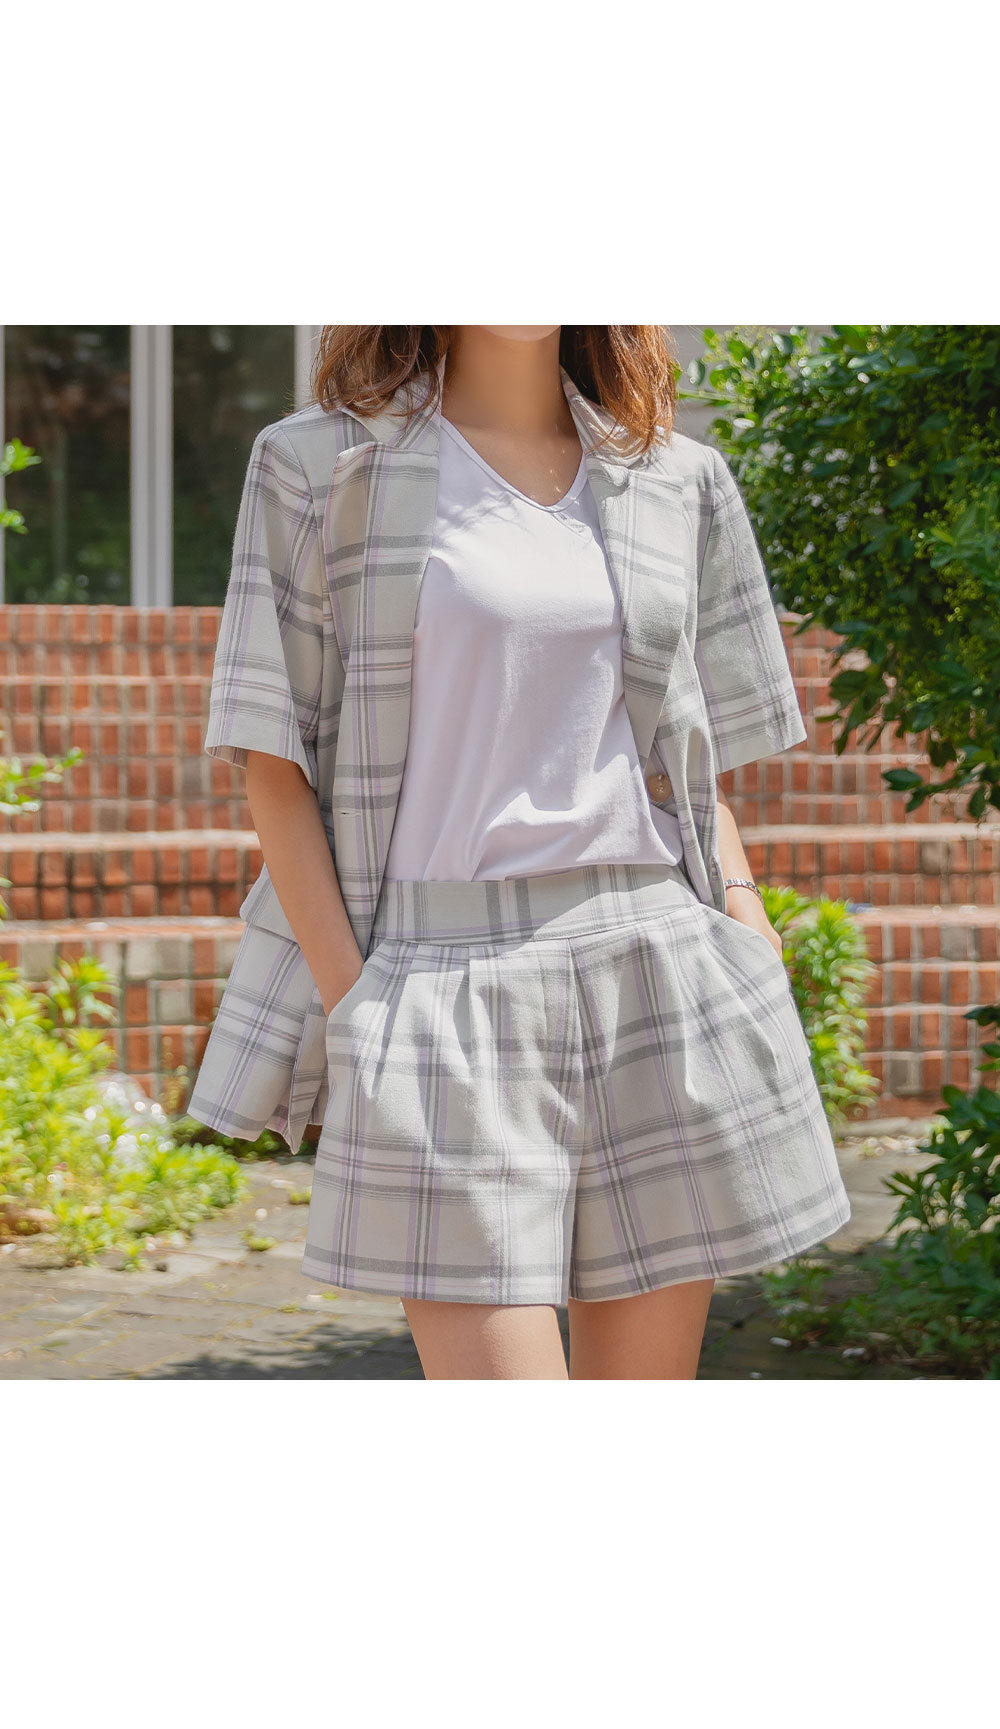 Common Check Overfit Short Sleeve Jacket